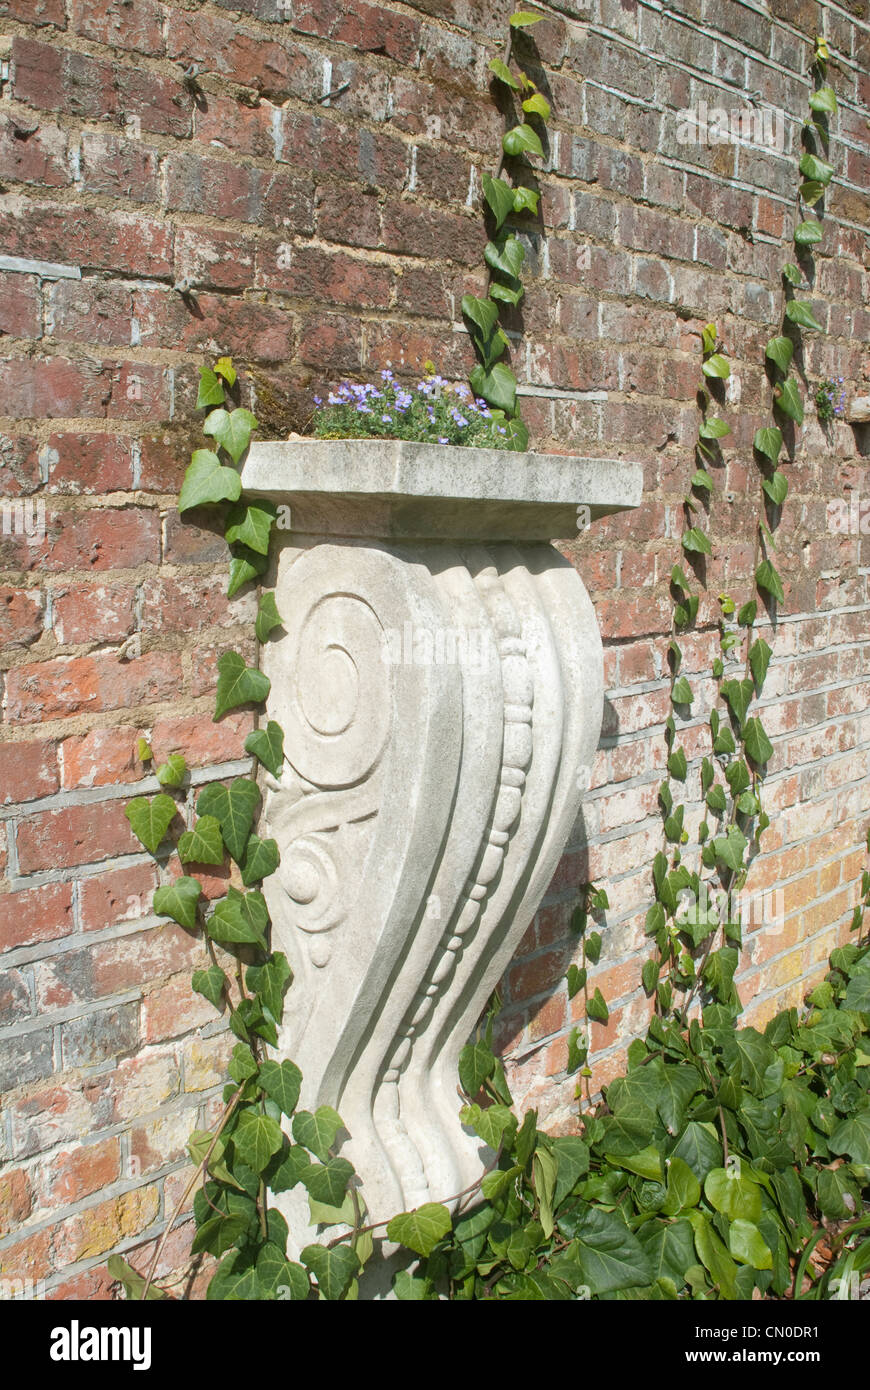 Ornamental Garden Architecture With Antique Brick Wall Purple Flowers And  Ivy   Stock Image